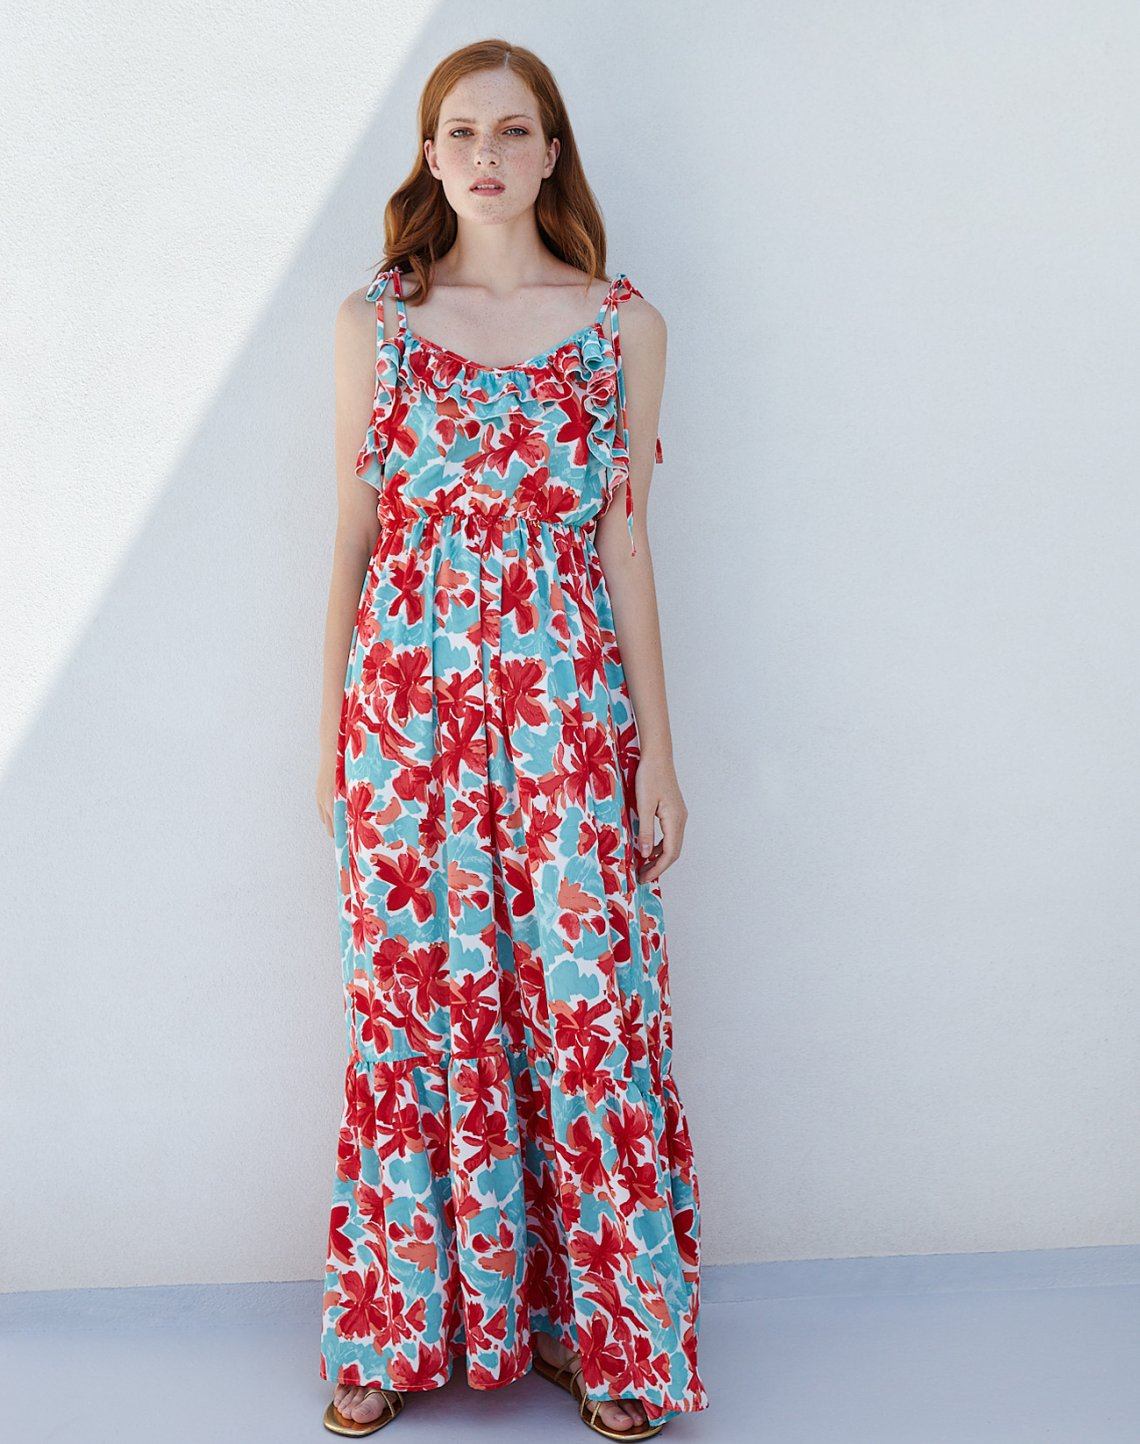 Printed maxi dress with tie straps